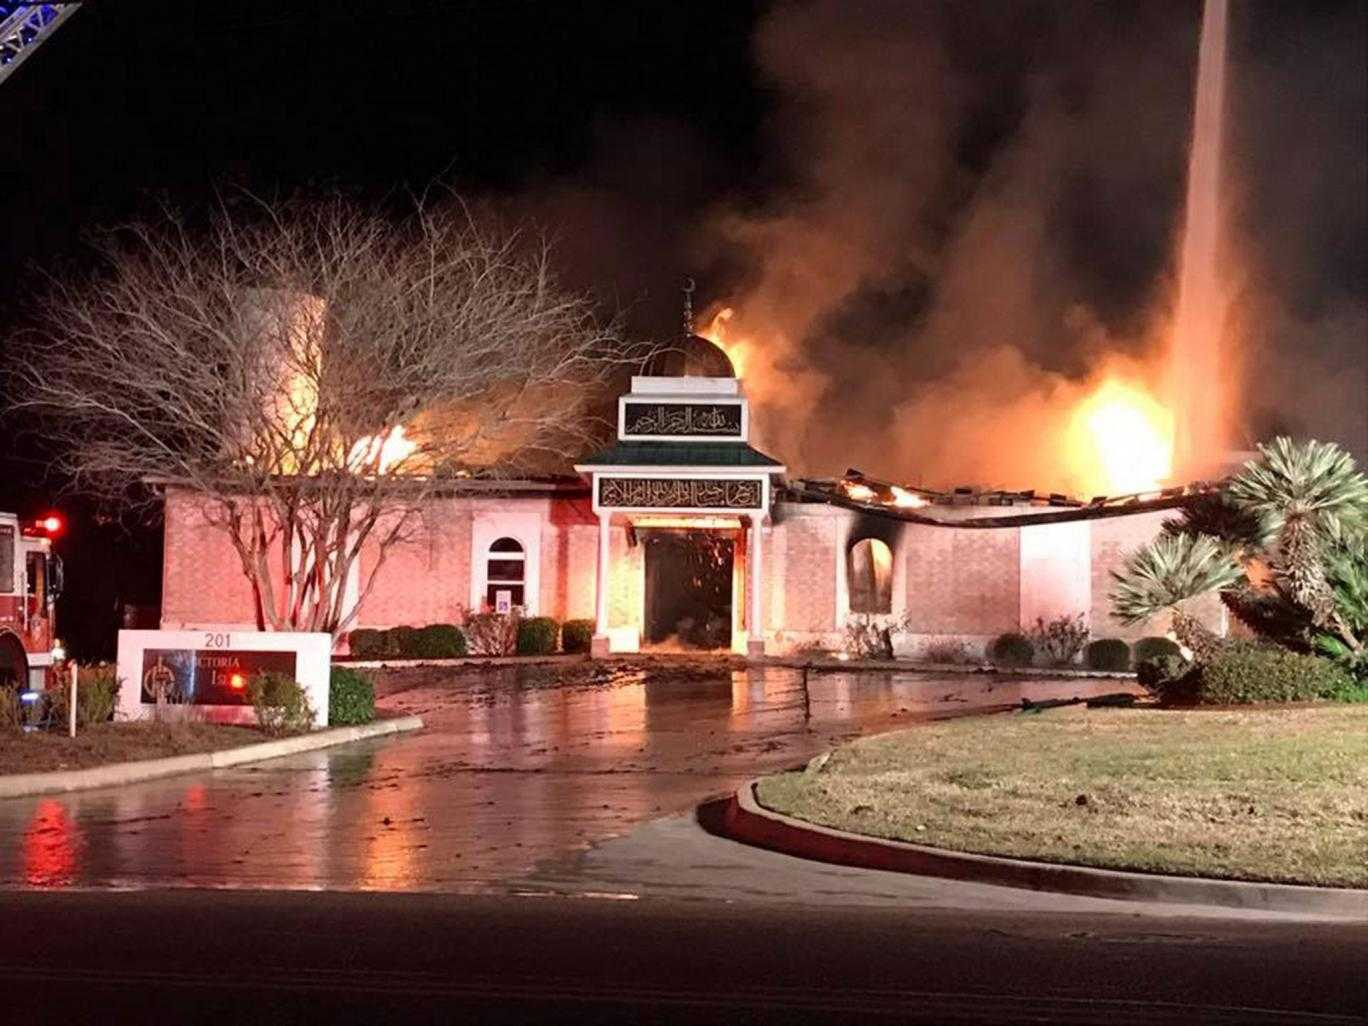 Texas Jews Allow Muslims To Use Their Synagogue After Their Mosque Was Burned | Jews